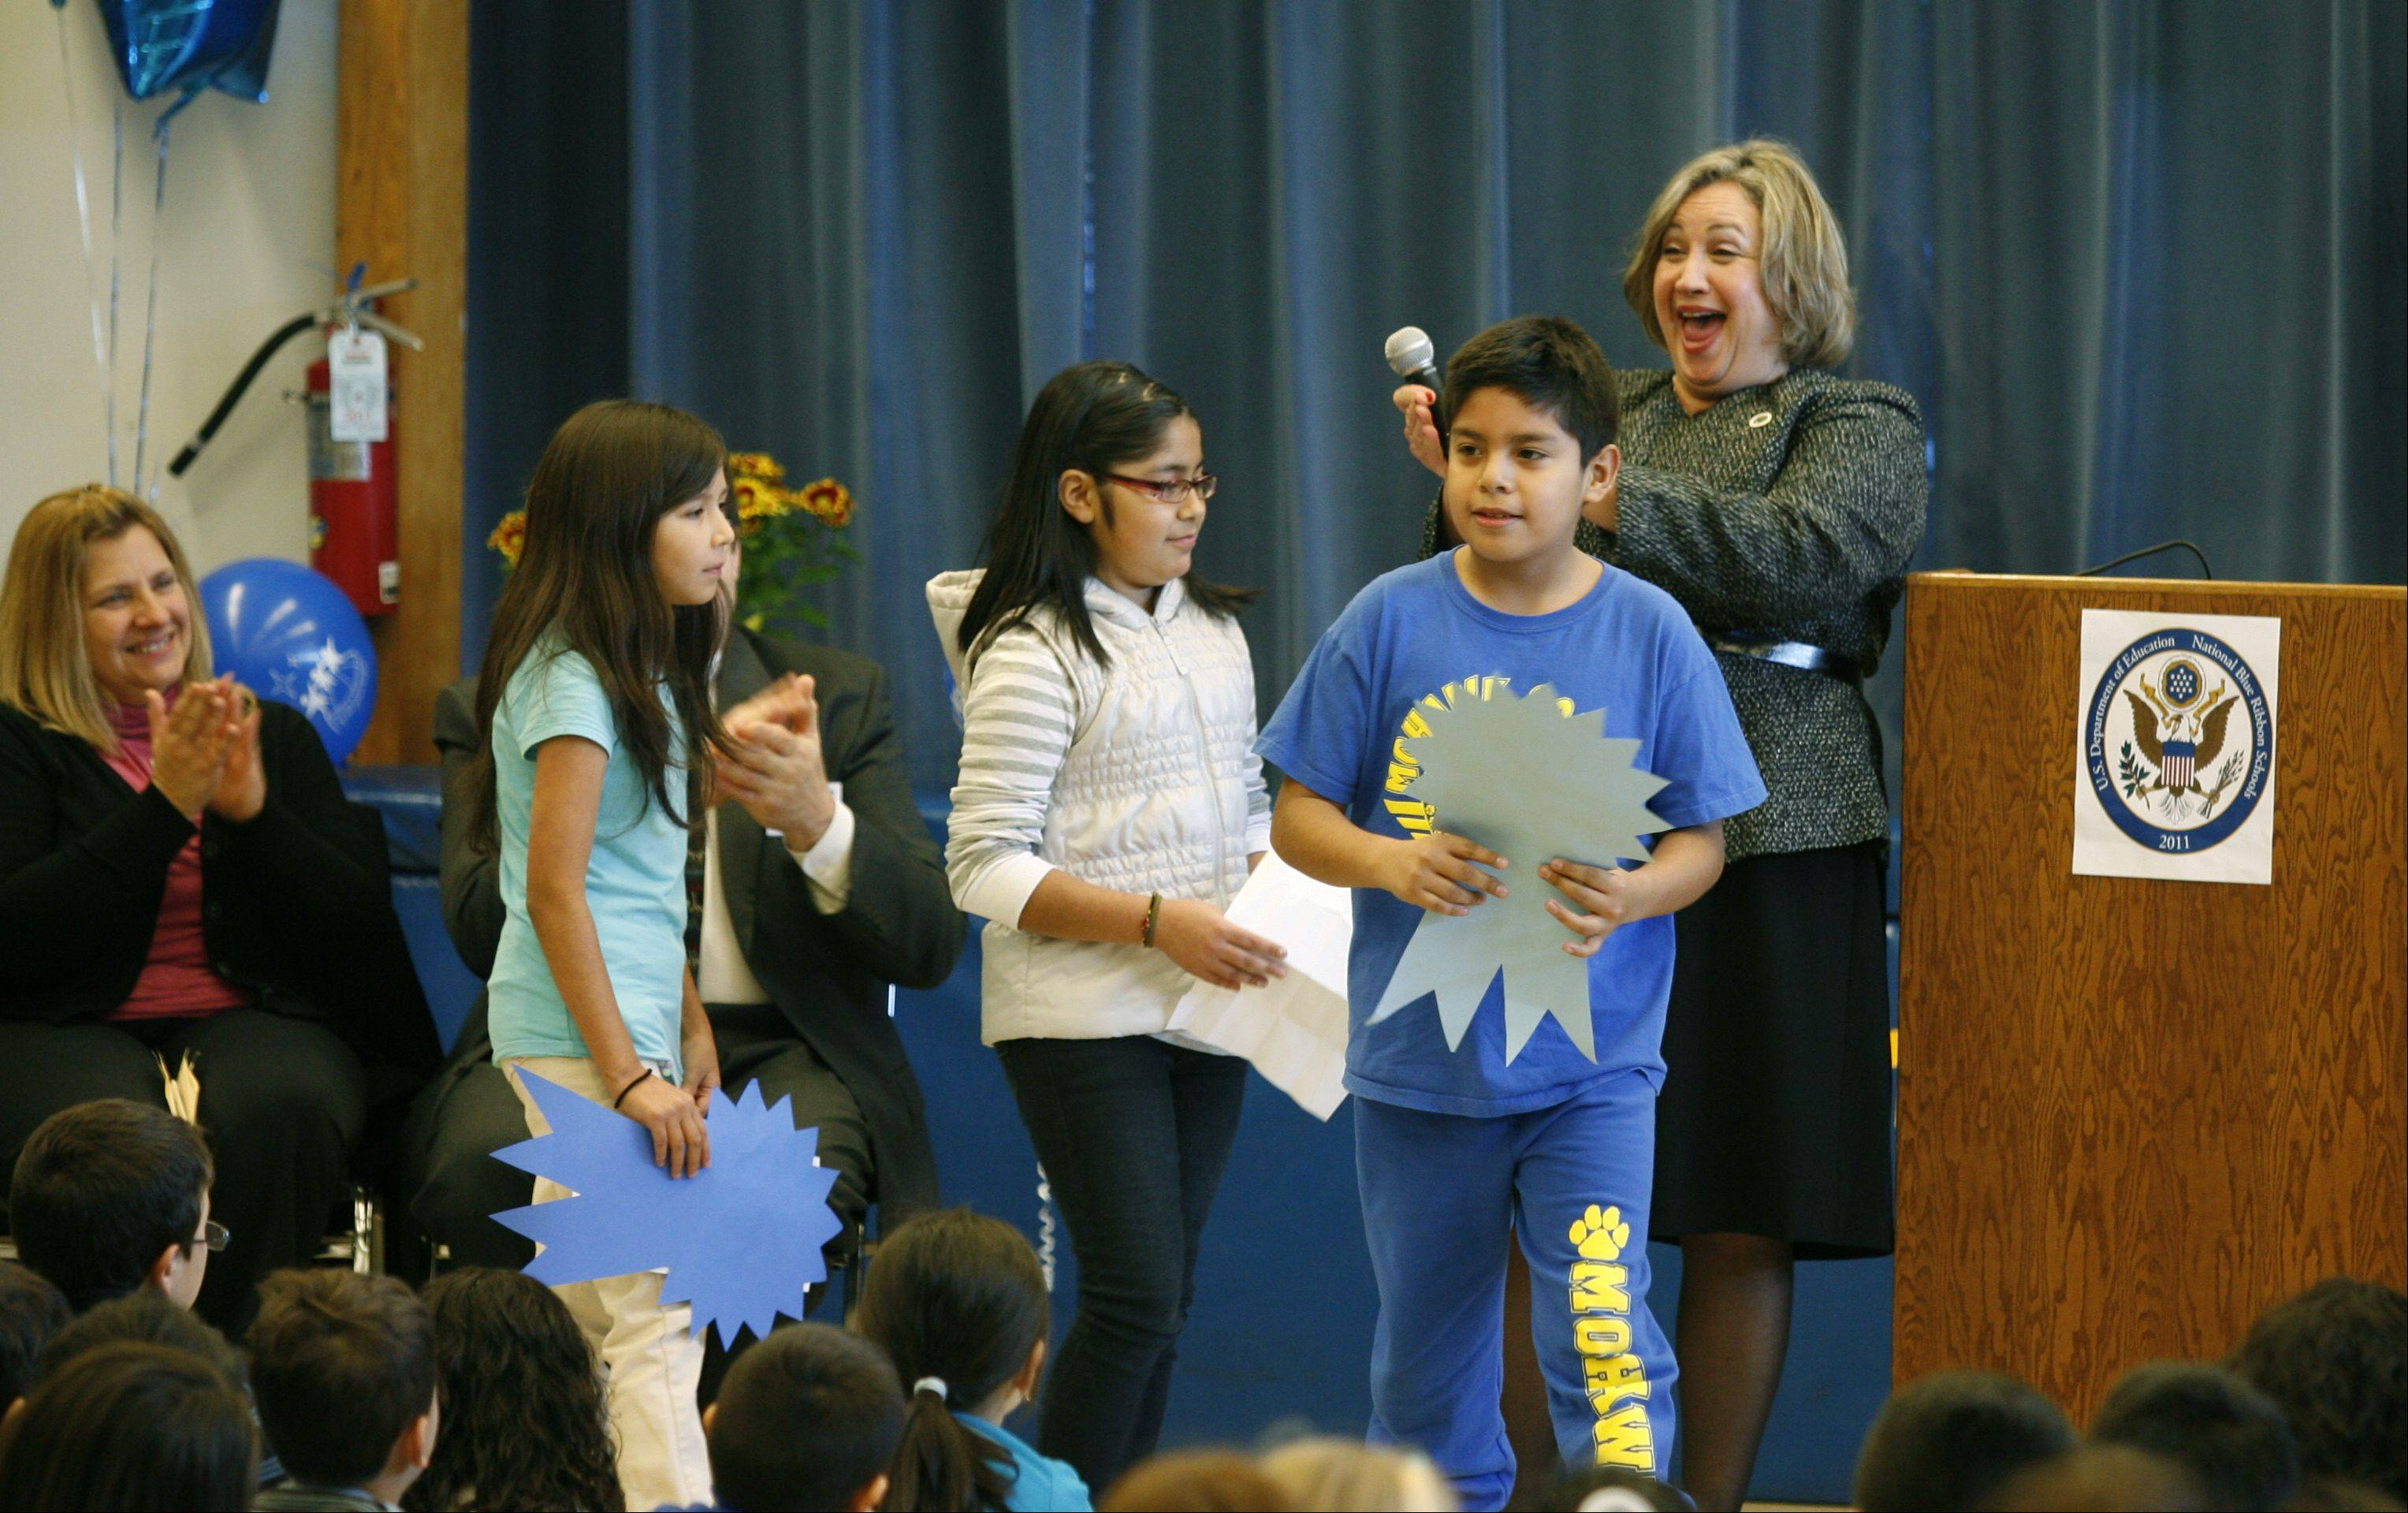 Mohawk Elementary School students join Principal Madelyn Devers during a ceremony Wednesday recognizing the school's 2011 National Blue Ribbon School Award from the U.S. Department of Education.